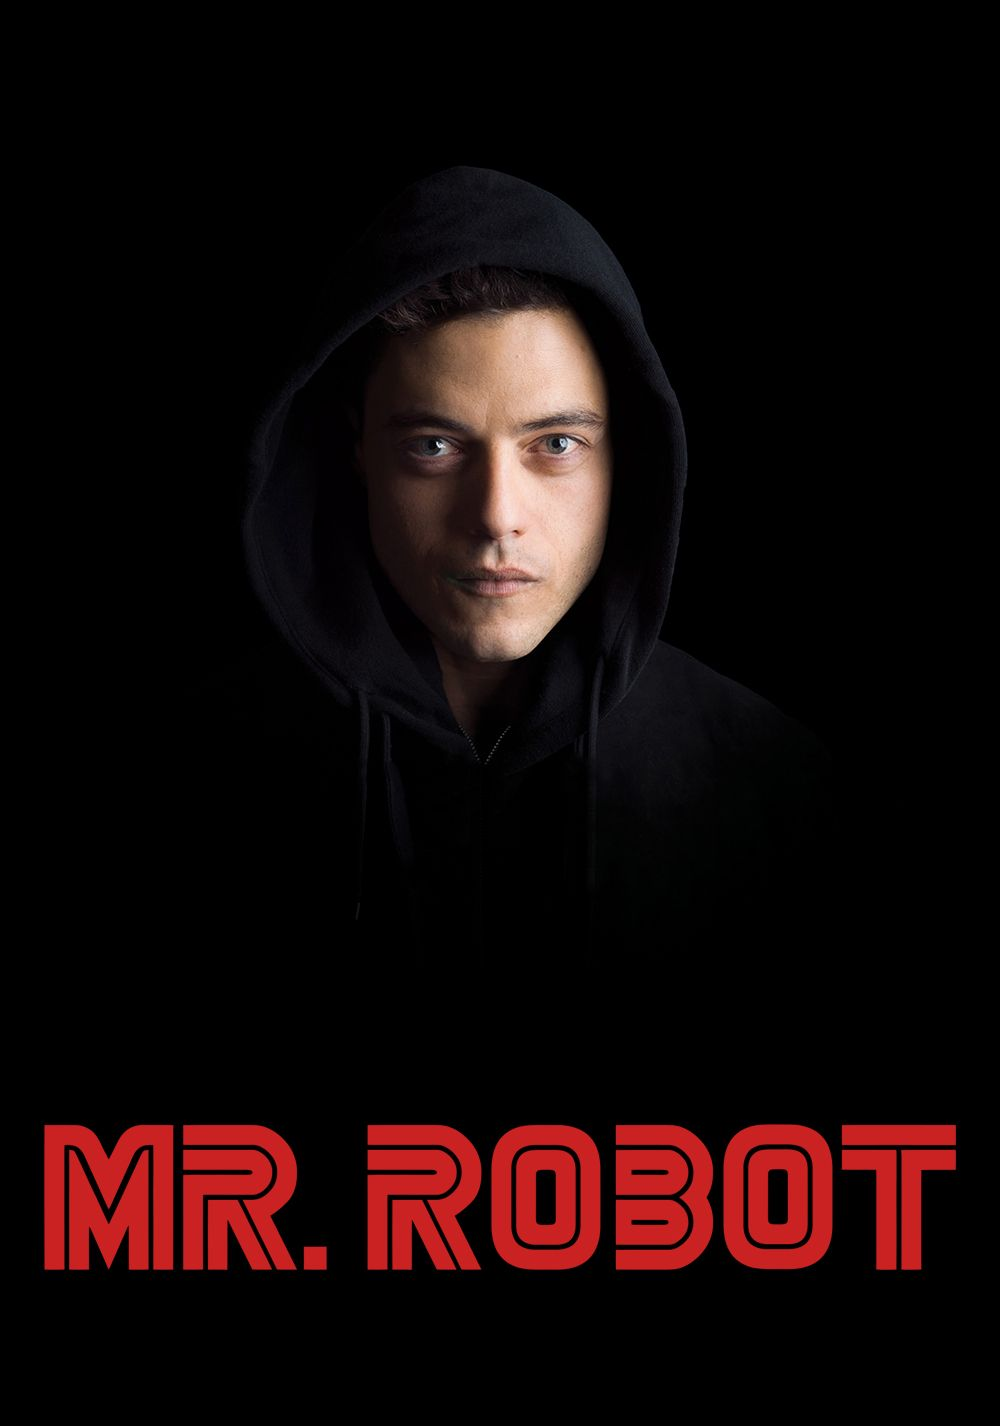 mr robot tv poster image оуе1 pinterest mr robot tvs and